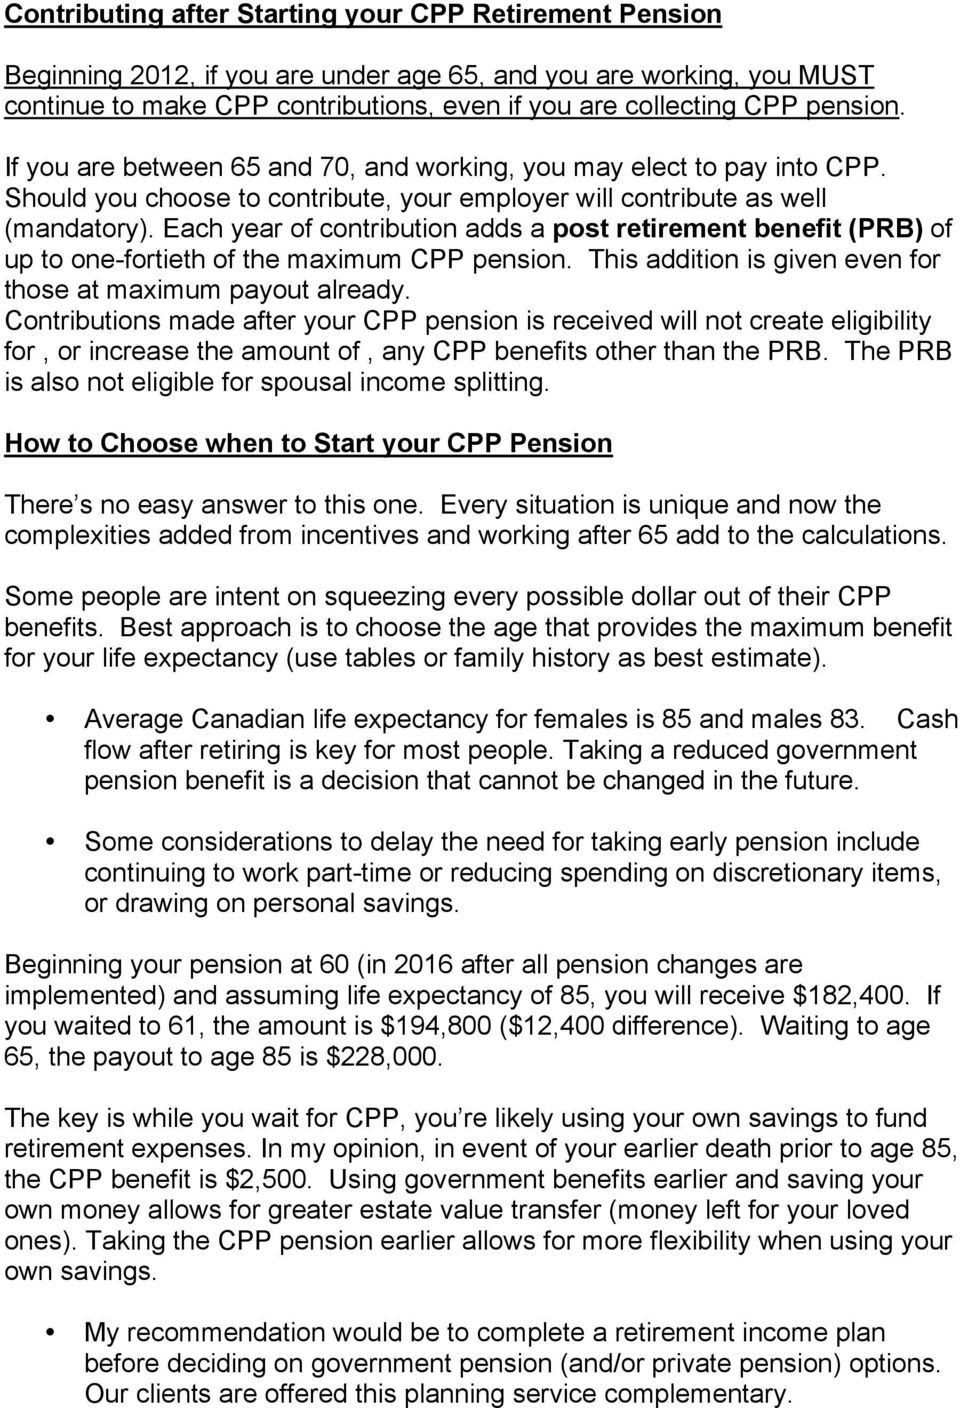 Each year of contribution adds a post retirement benefit (PRB) of up to one-fortieth of the maximum CPP pension. This addition is given even for those at maximum payout already.